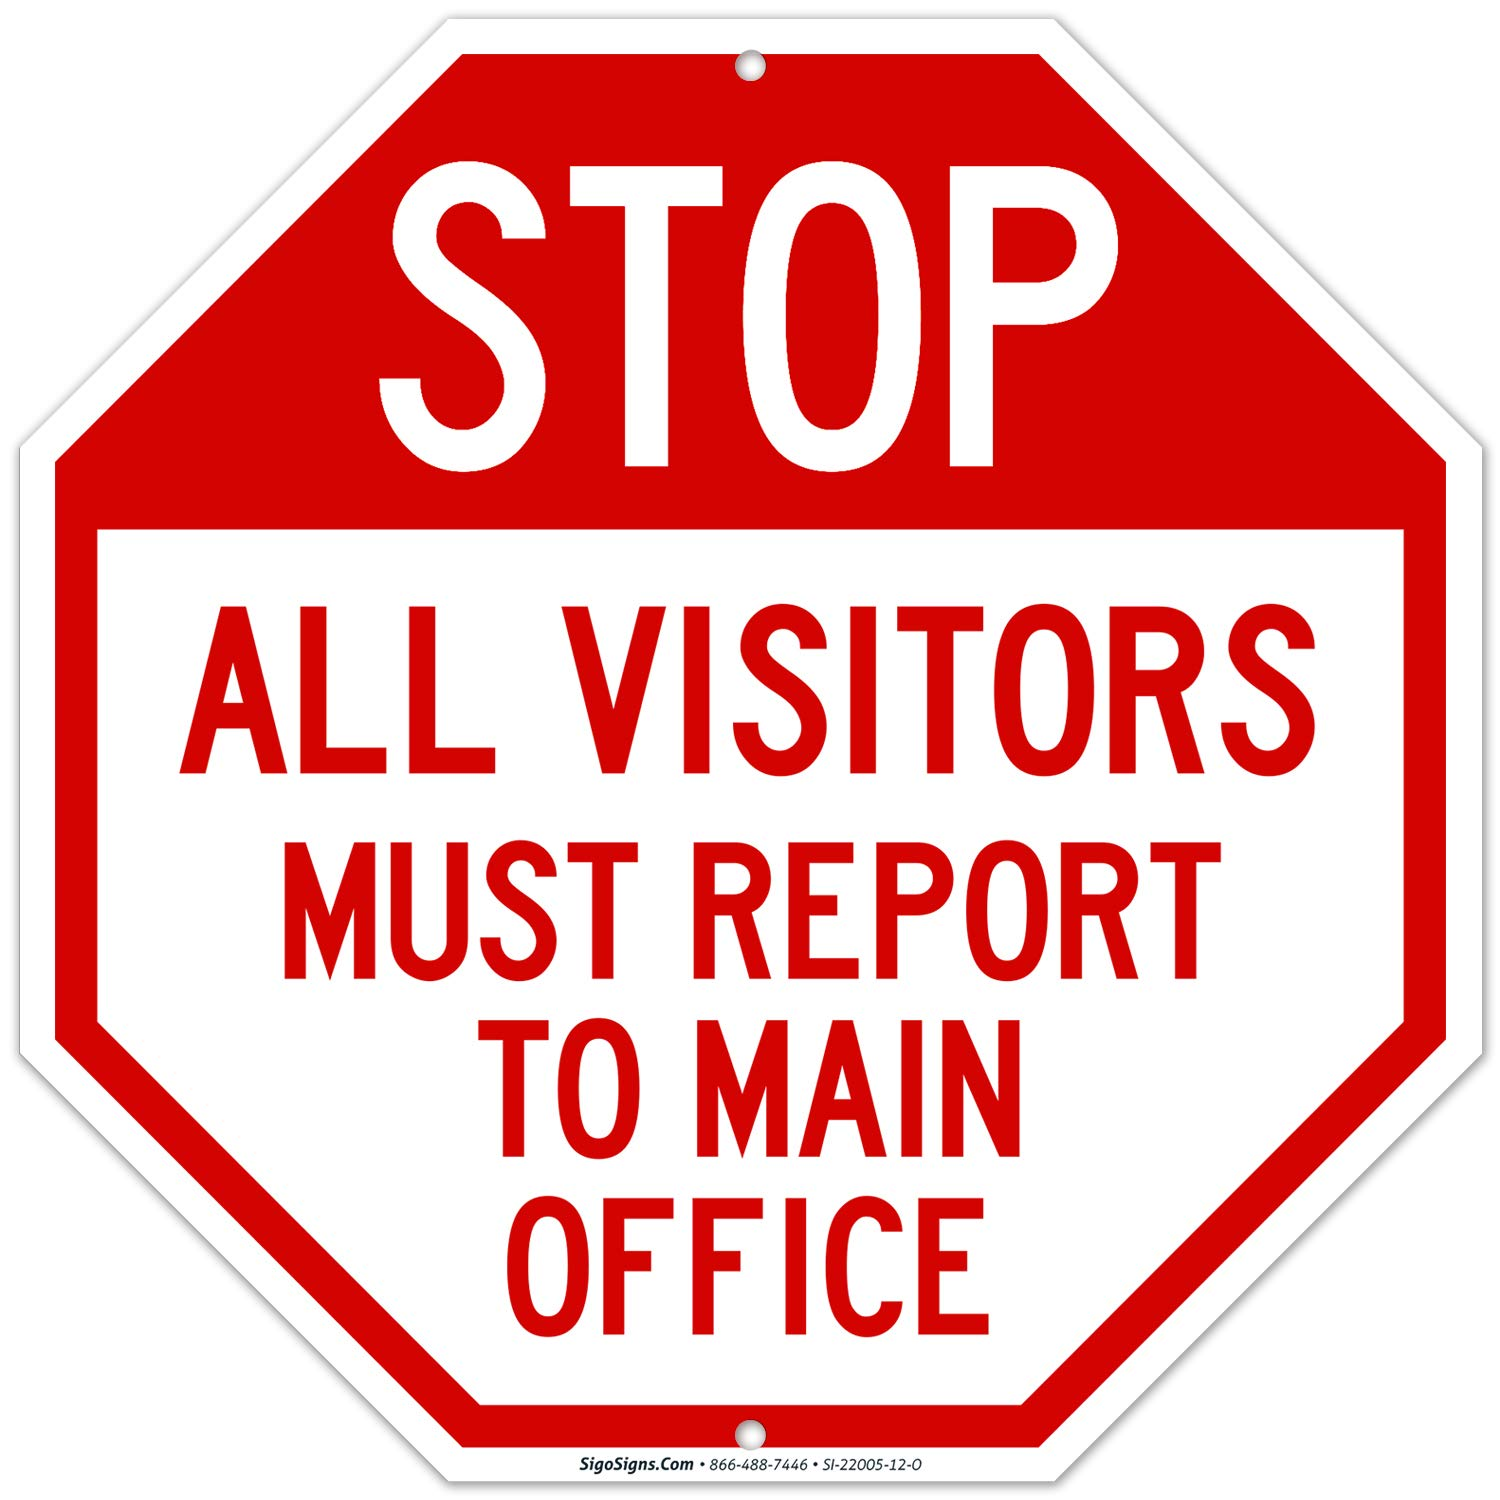 All Visitors Must Report to Main Office Sign, 12x12 Octagon Shaped Rust Free Aluminum, Weather/Fade Resistant, Easy Mounting, Indoor/Outdoor Use, Made in USA by SIGO SIGNS